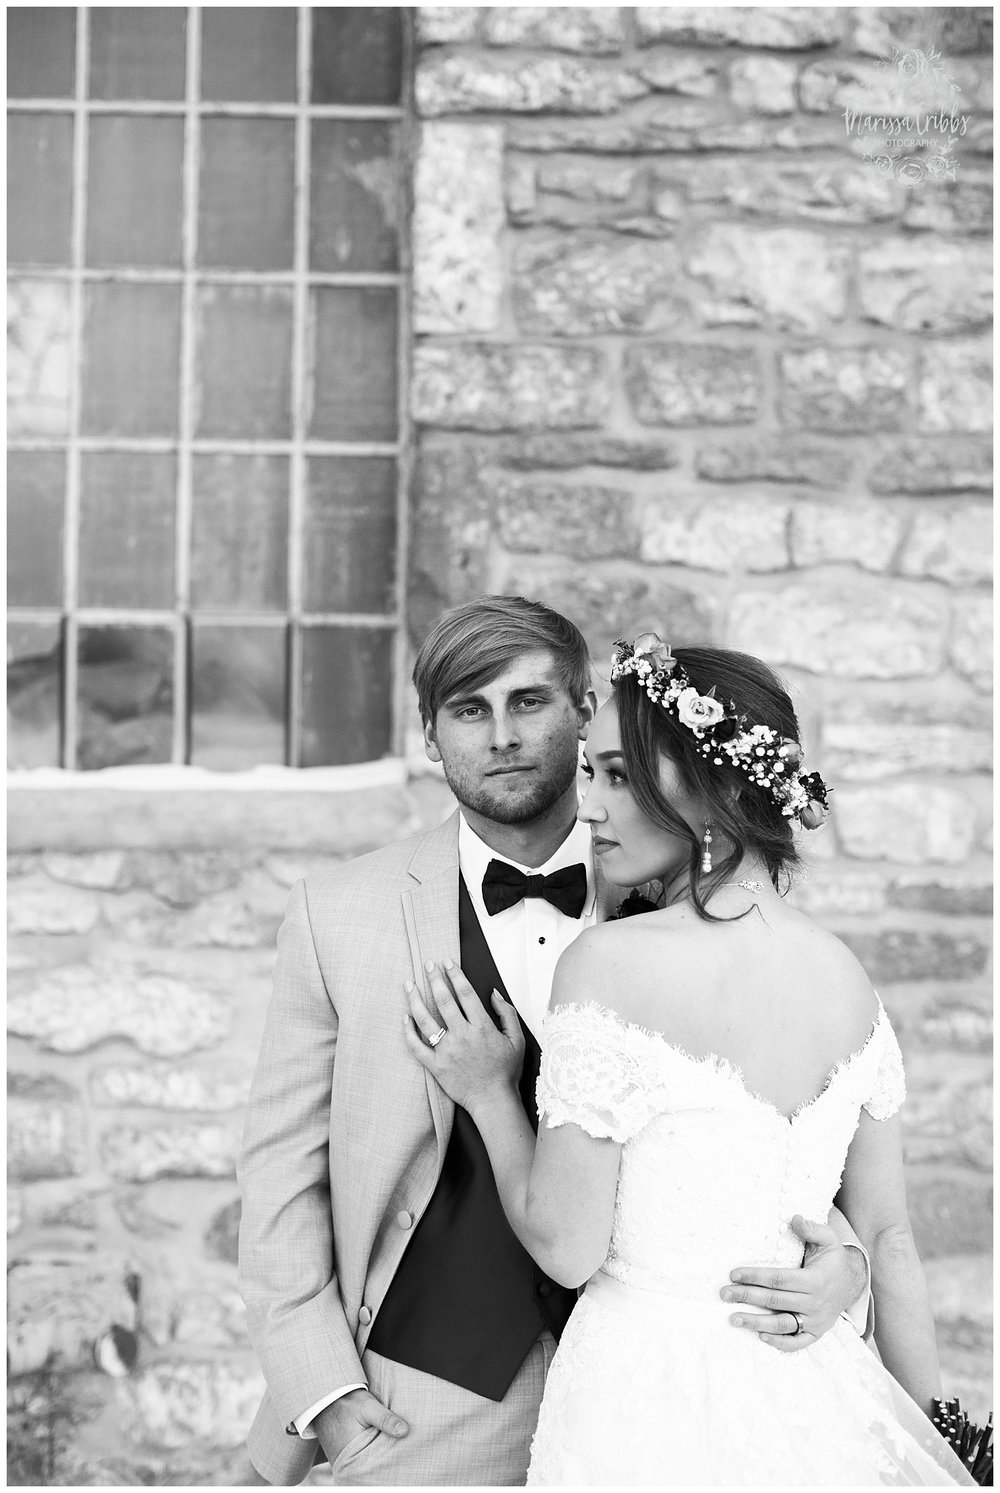 Abe & Jake's Landing Wedding | Lawrence, KS | KC Wedding Photographer | Morrison Wedding | Marissa Cribbs Photography_0227.jpg